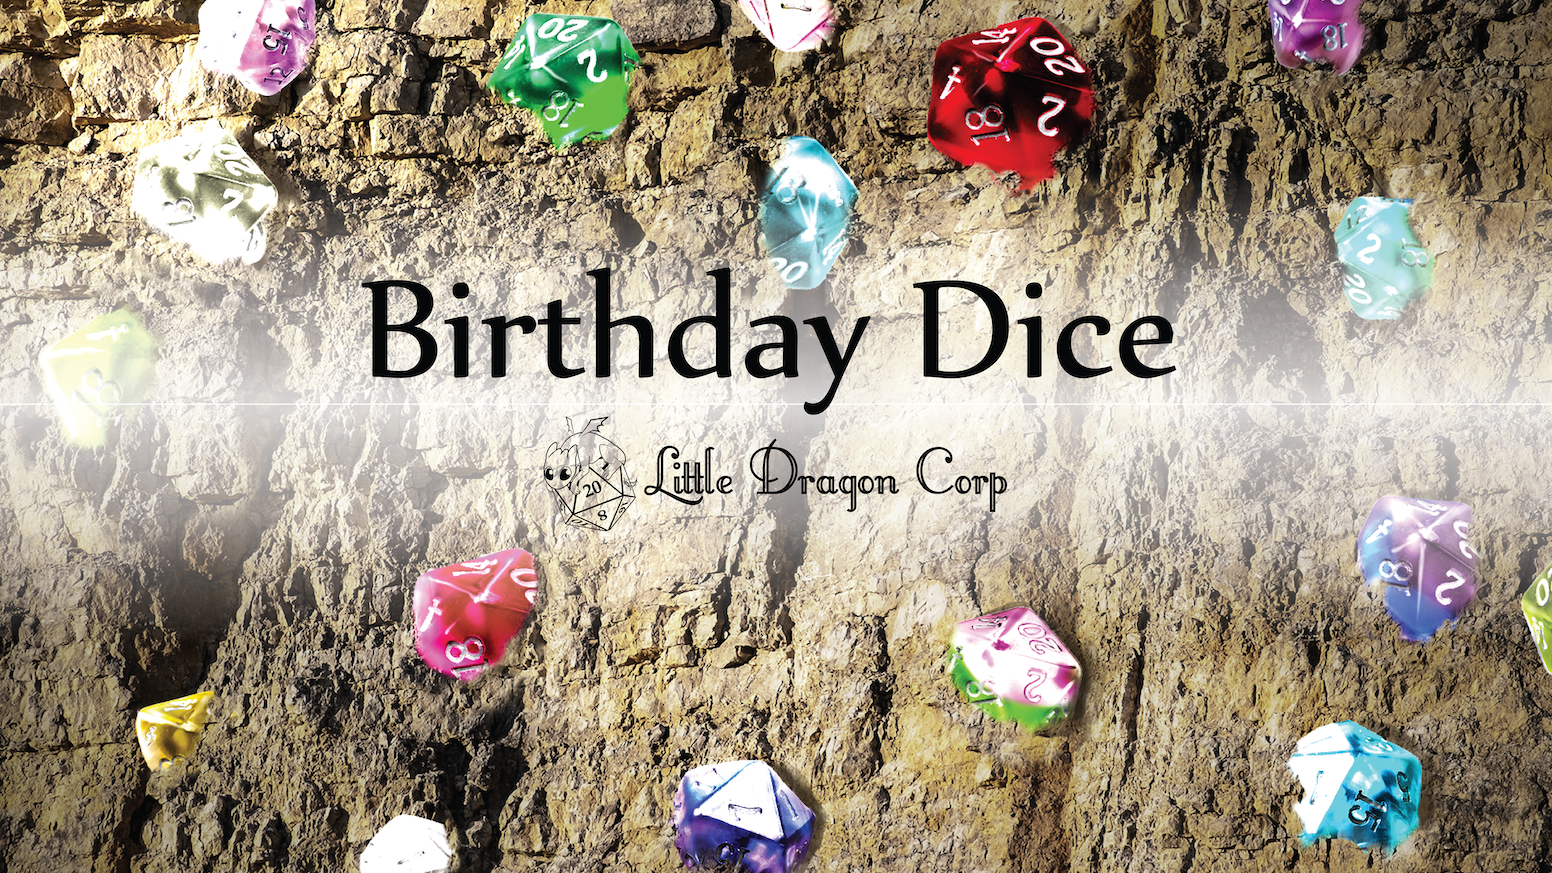 Birthday gemstone dice by colette chappell kickstarter birthday gemstone dice layered polyhedral dice for board games rpg campaigns izmirmasajfo